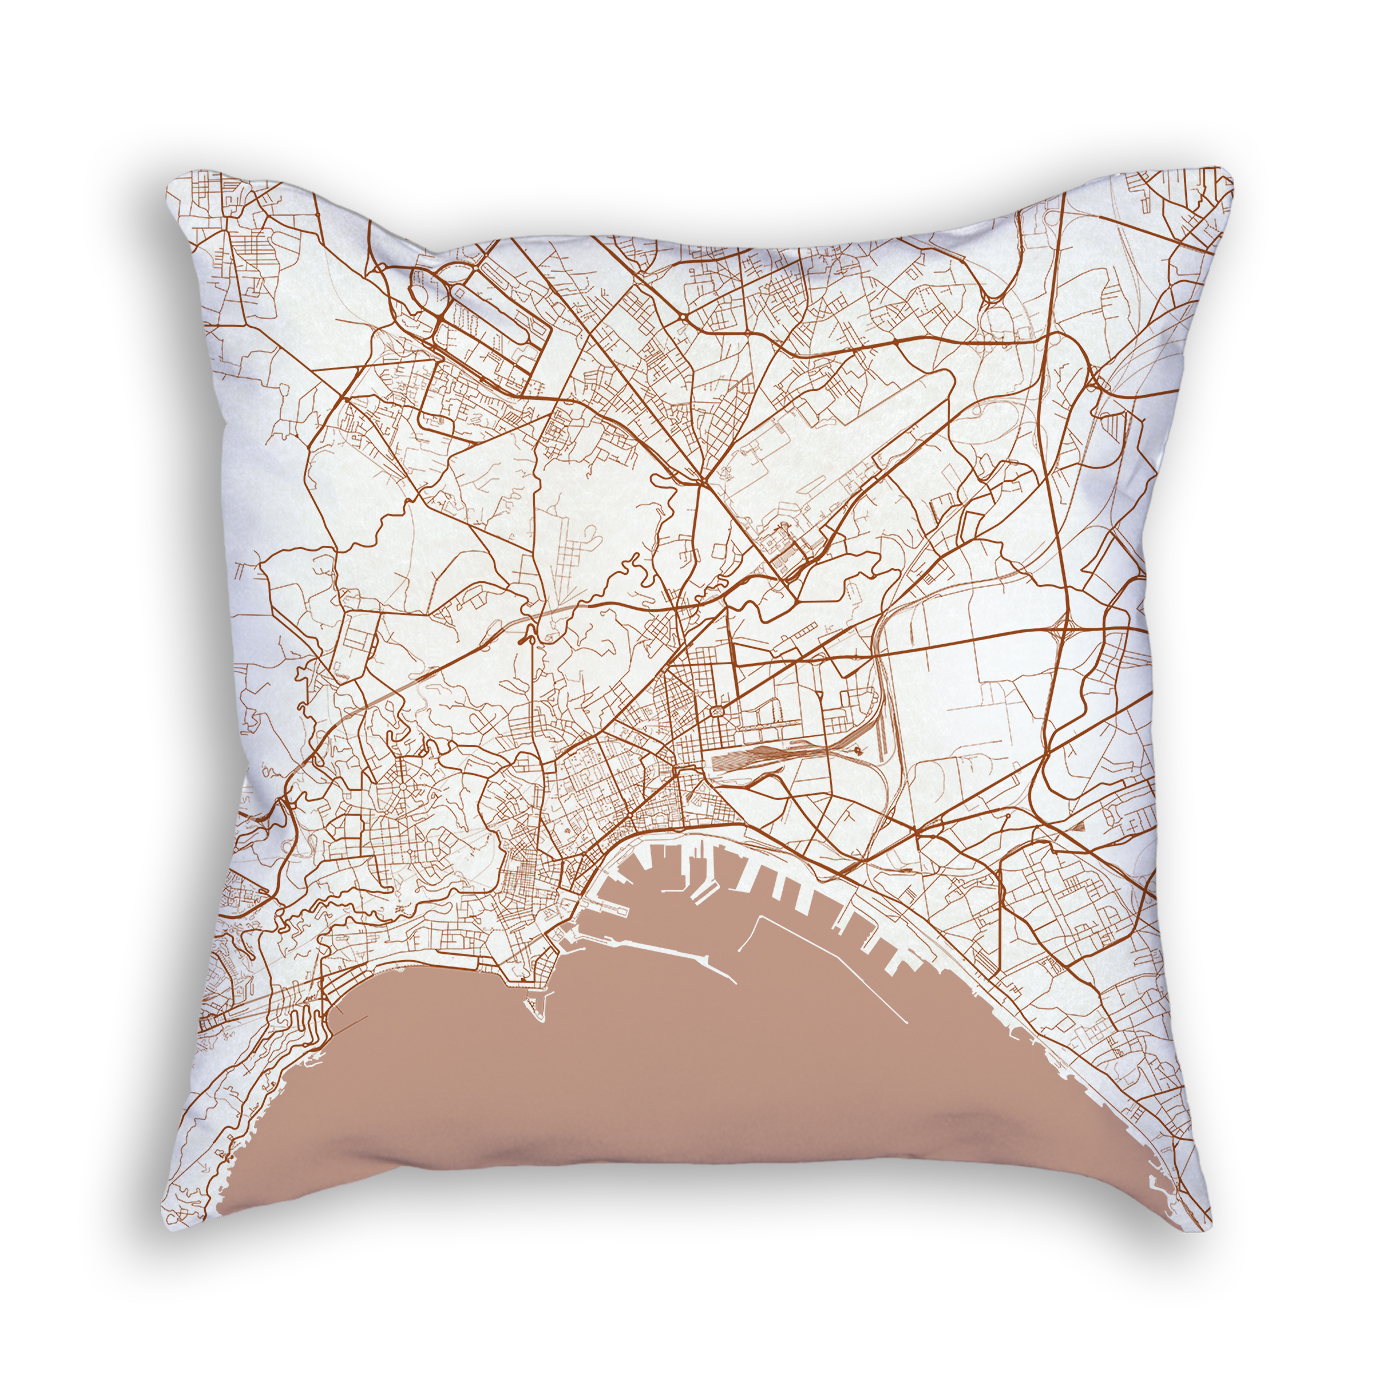 Naples Italy City Map Art Decorative Throw Pillow